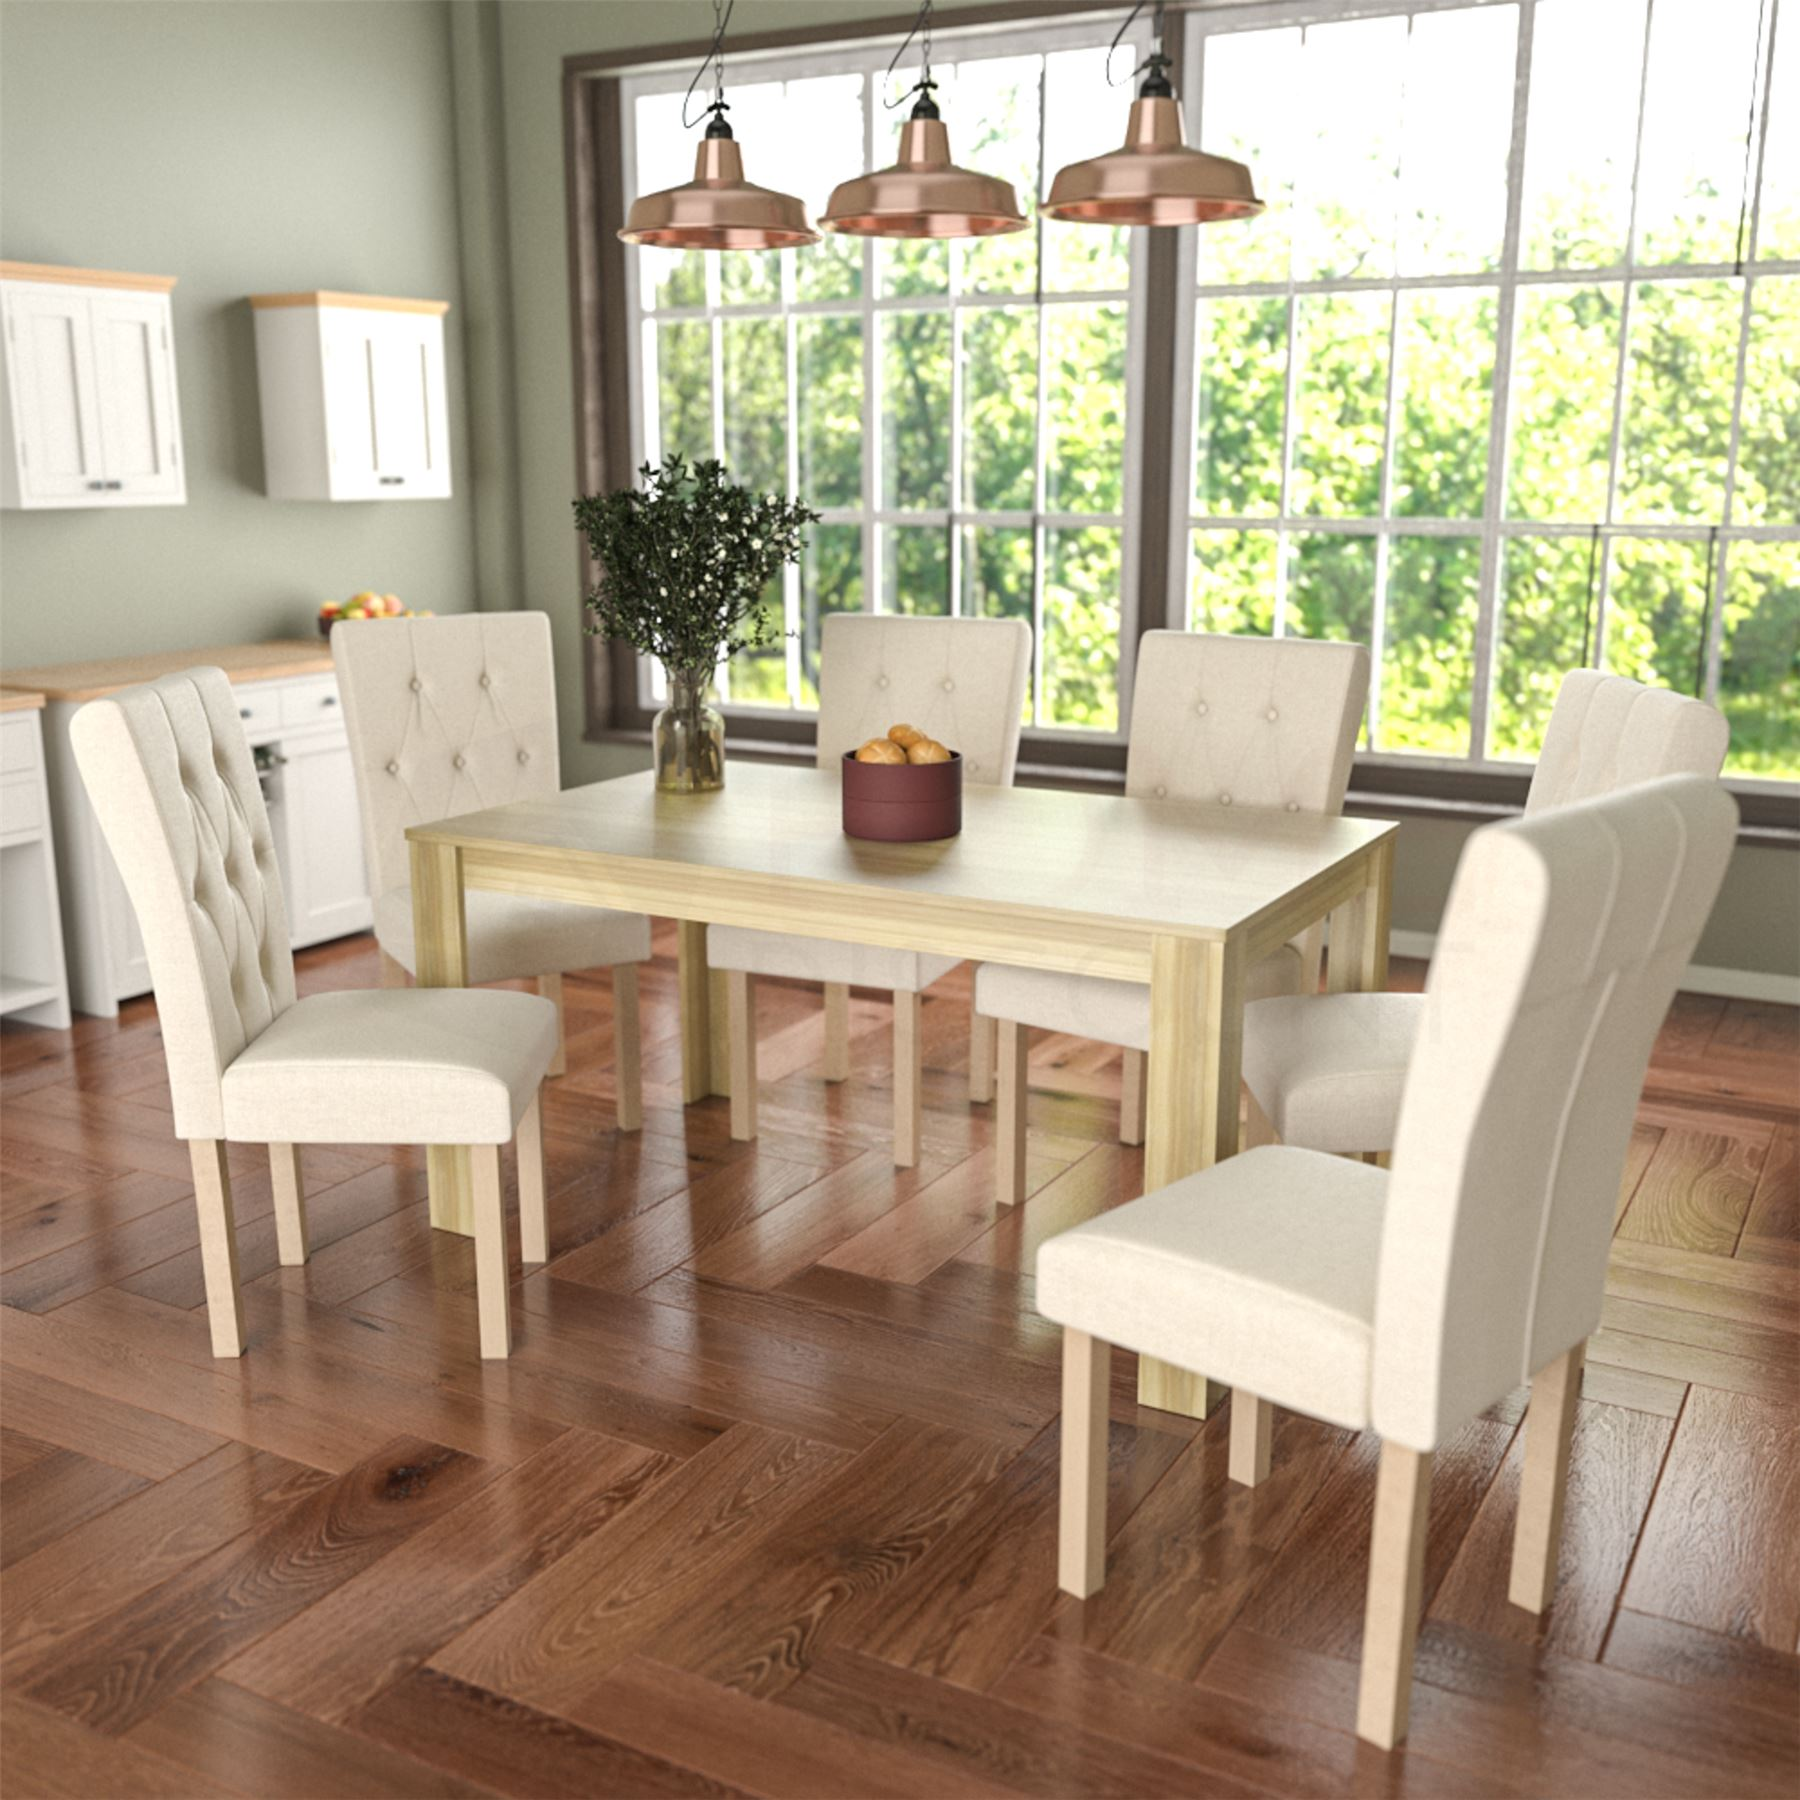 Dining Table and Chairs 6 Seat Set Fabric Linen Wood ...